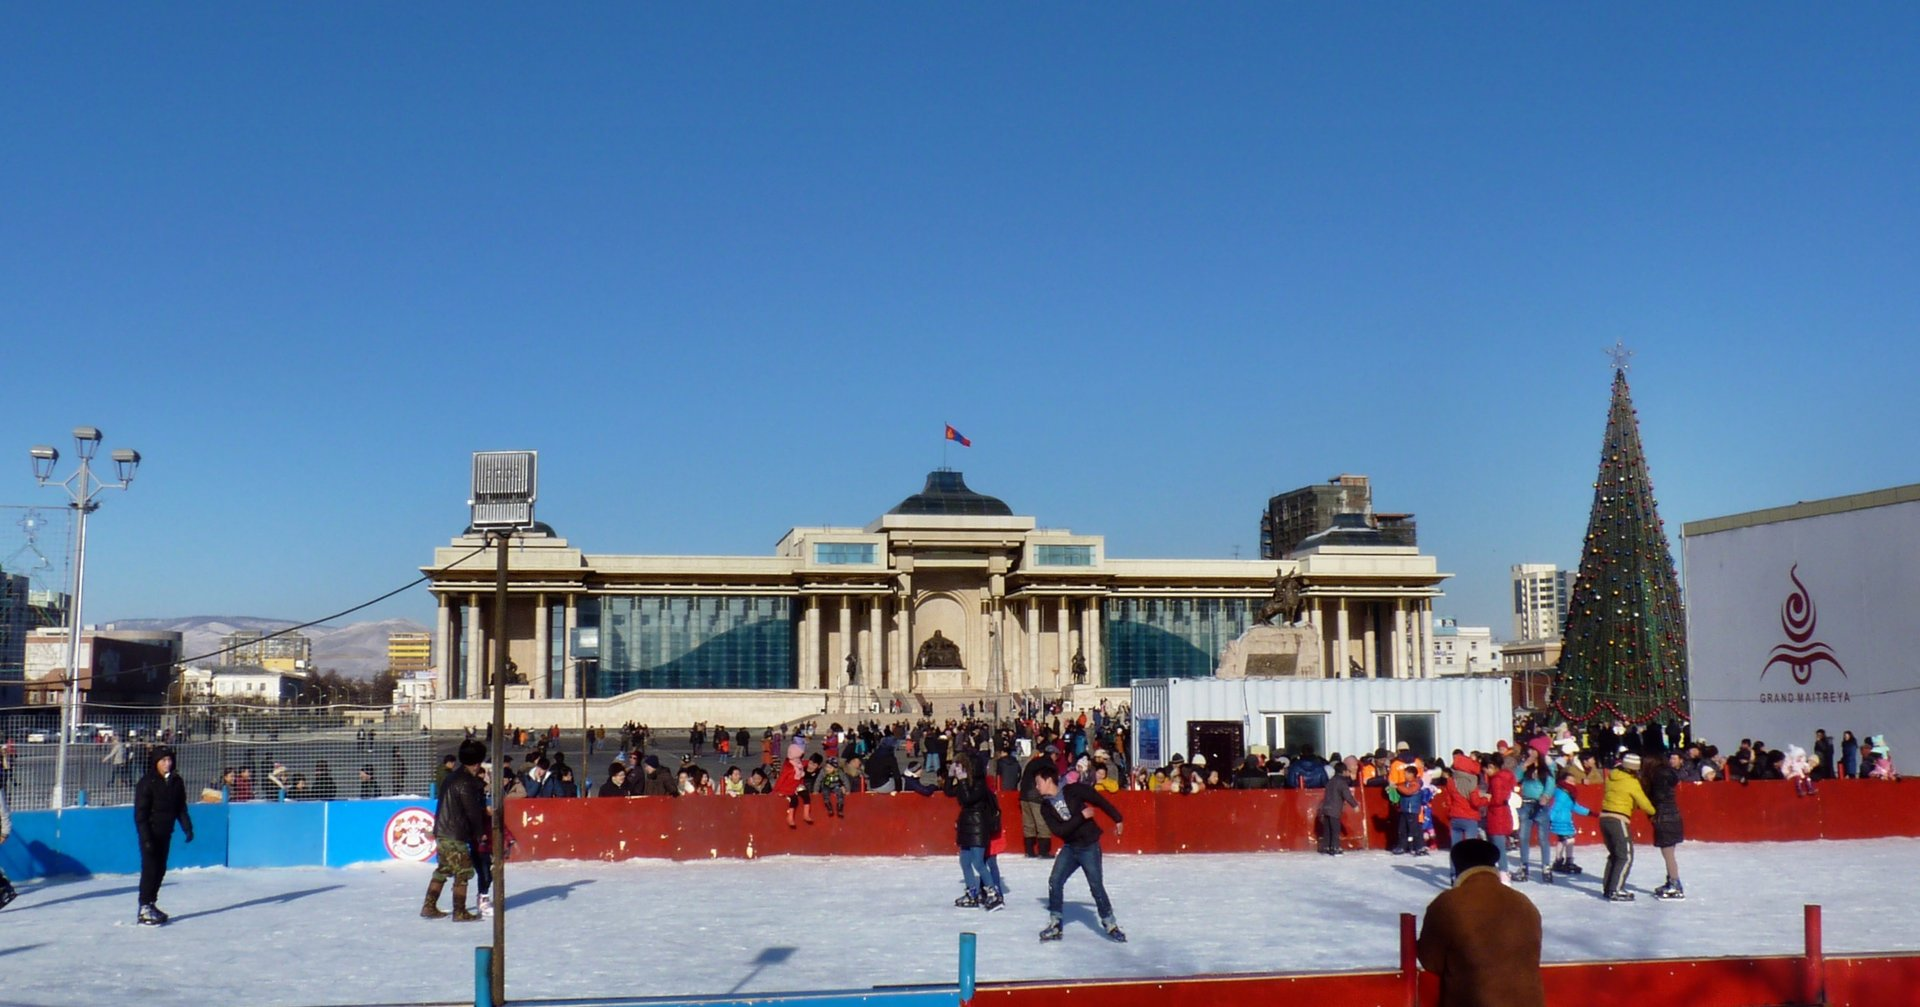 Ice Skating in Mongolia 2019 - Best Time